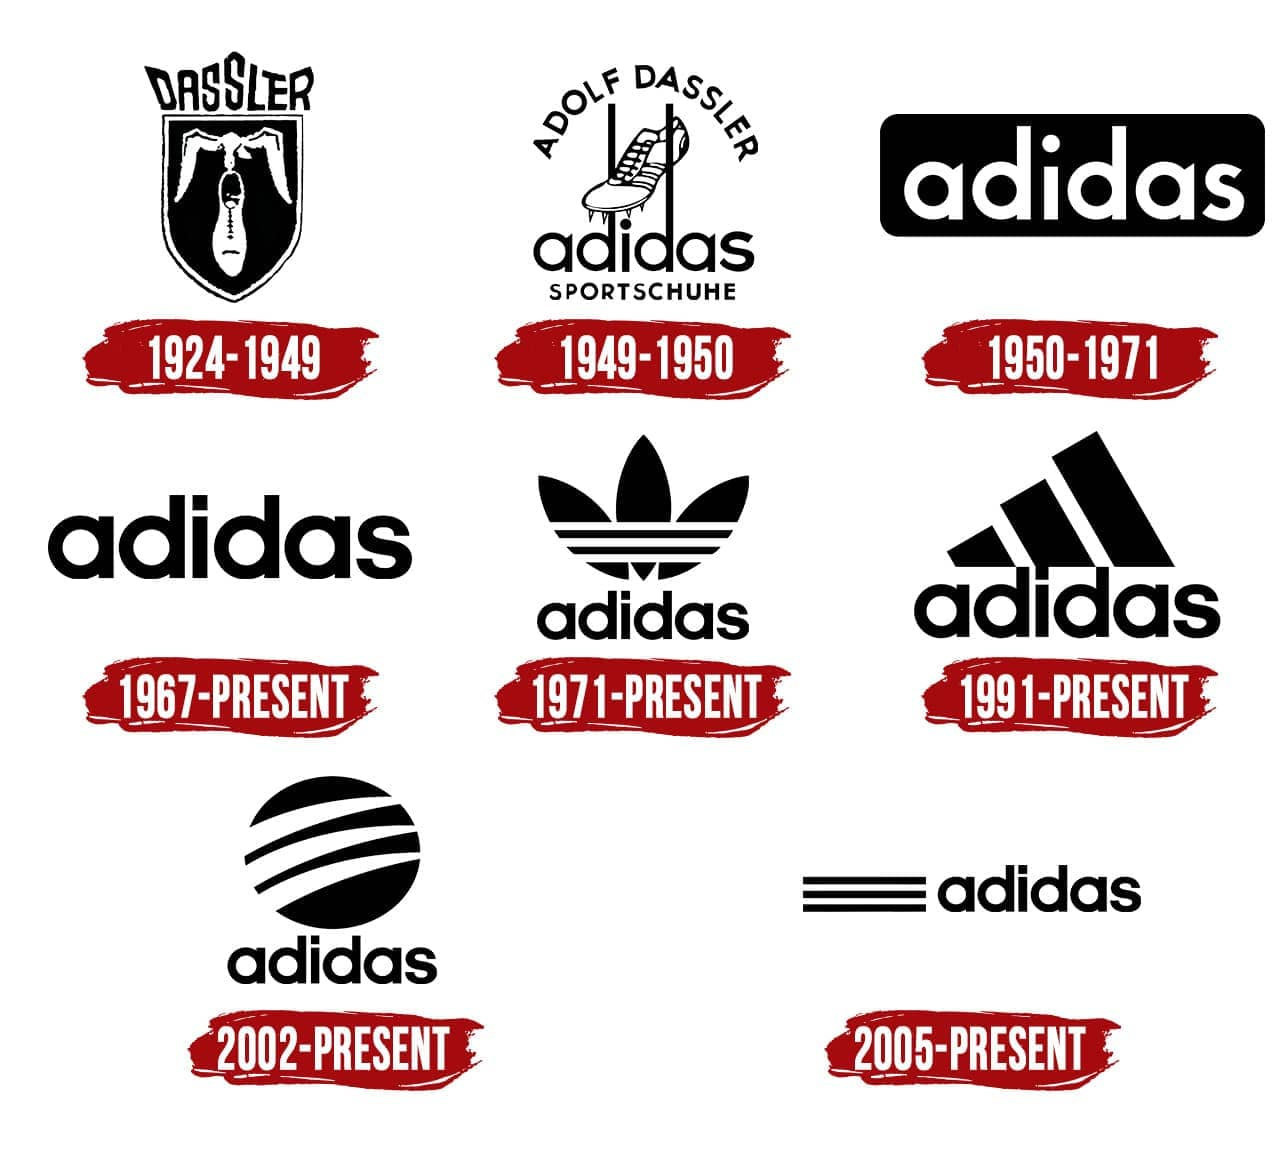 cliente meditación mayor  Adidas Logo | The most famous brands and company logos in the world